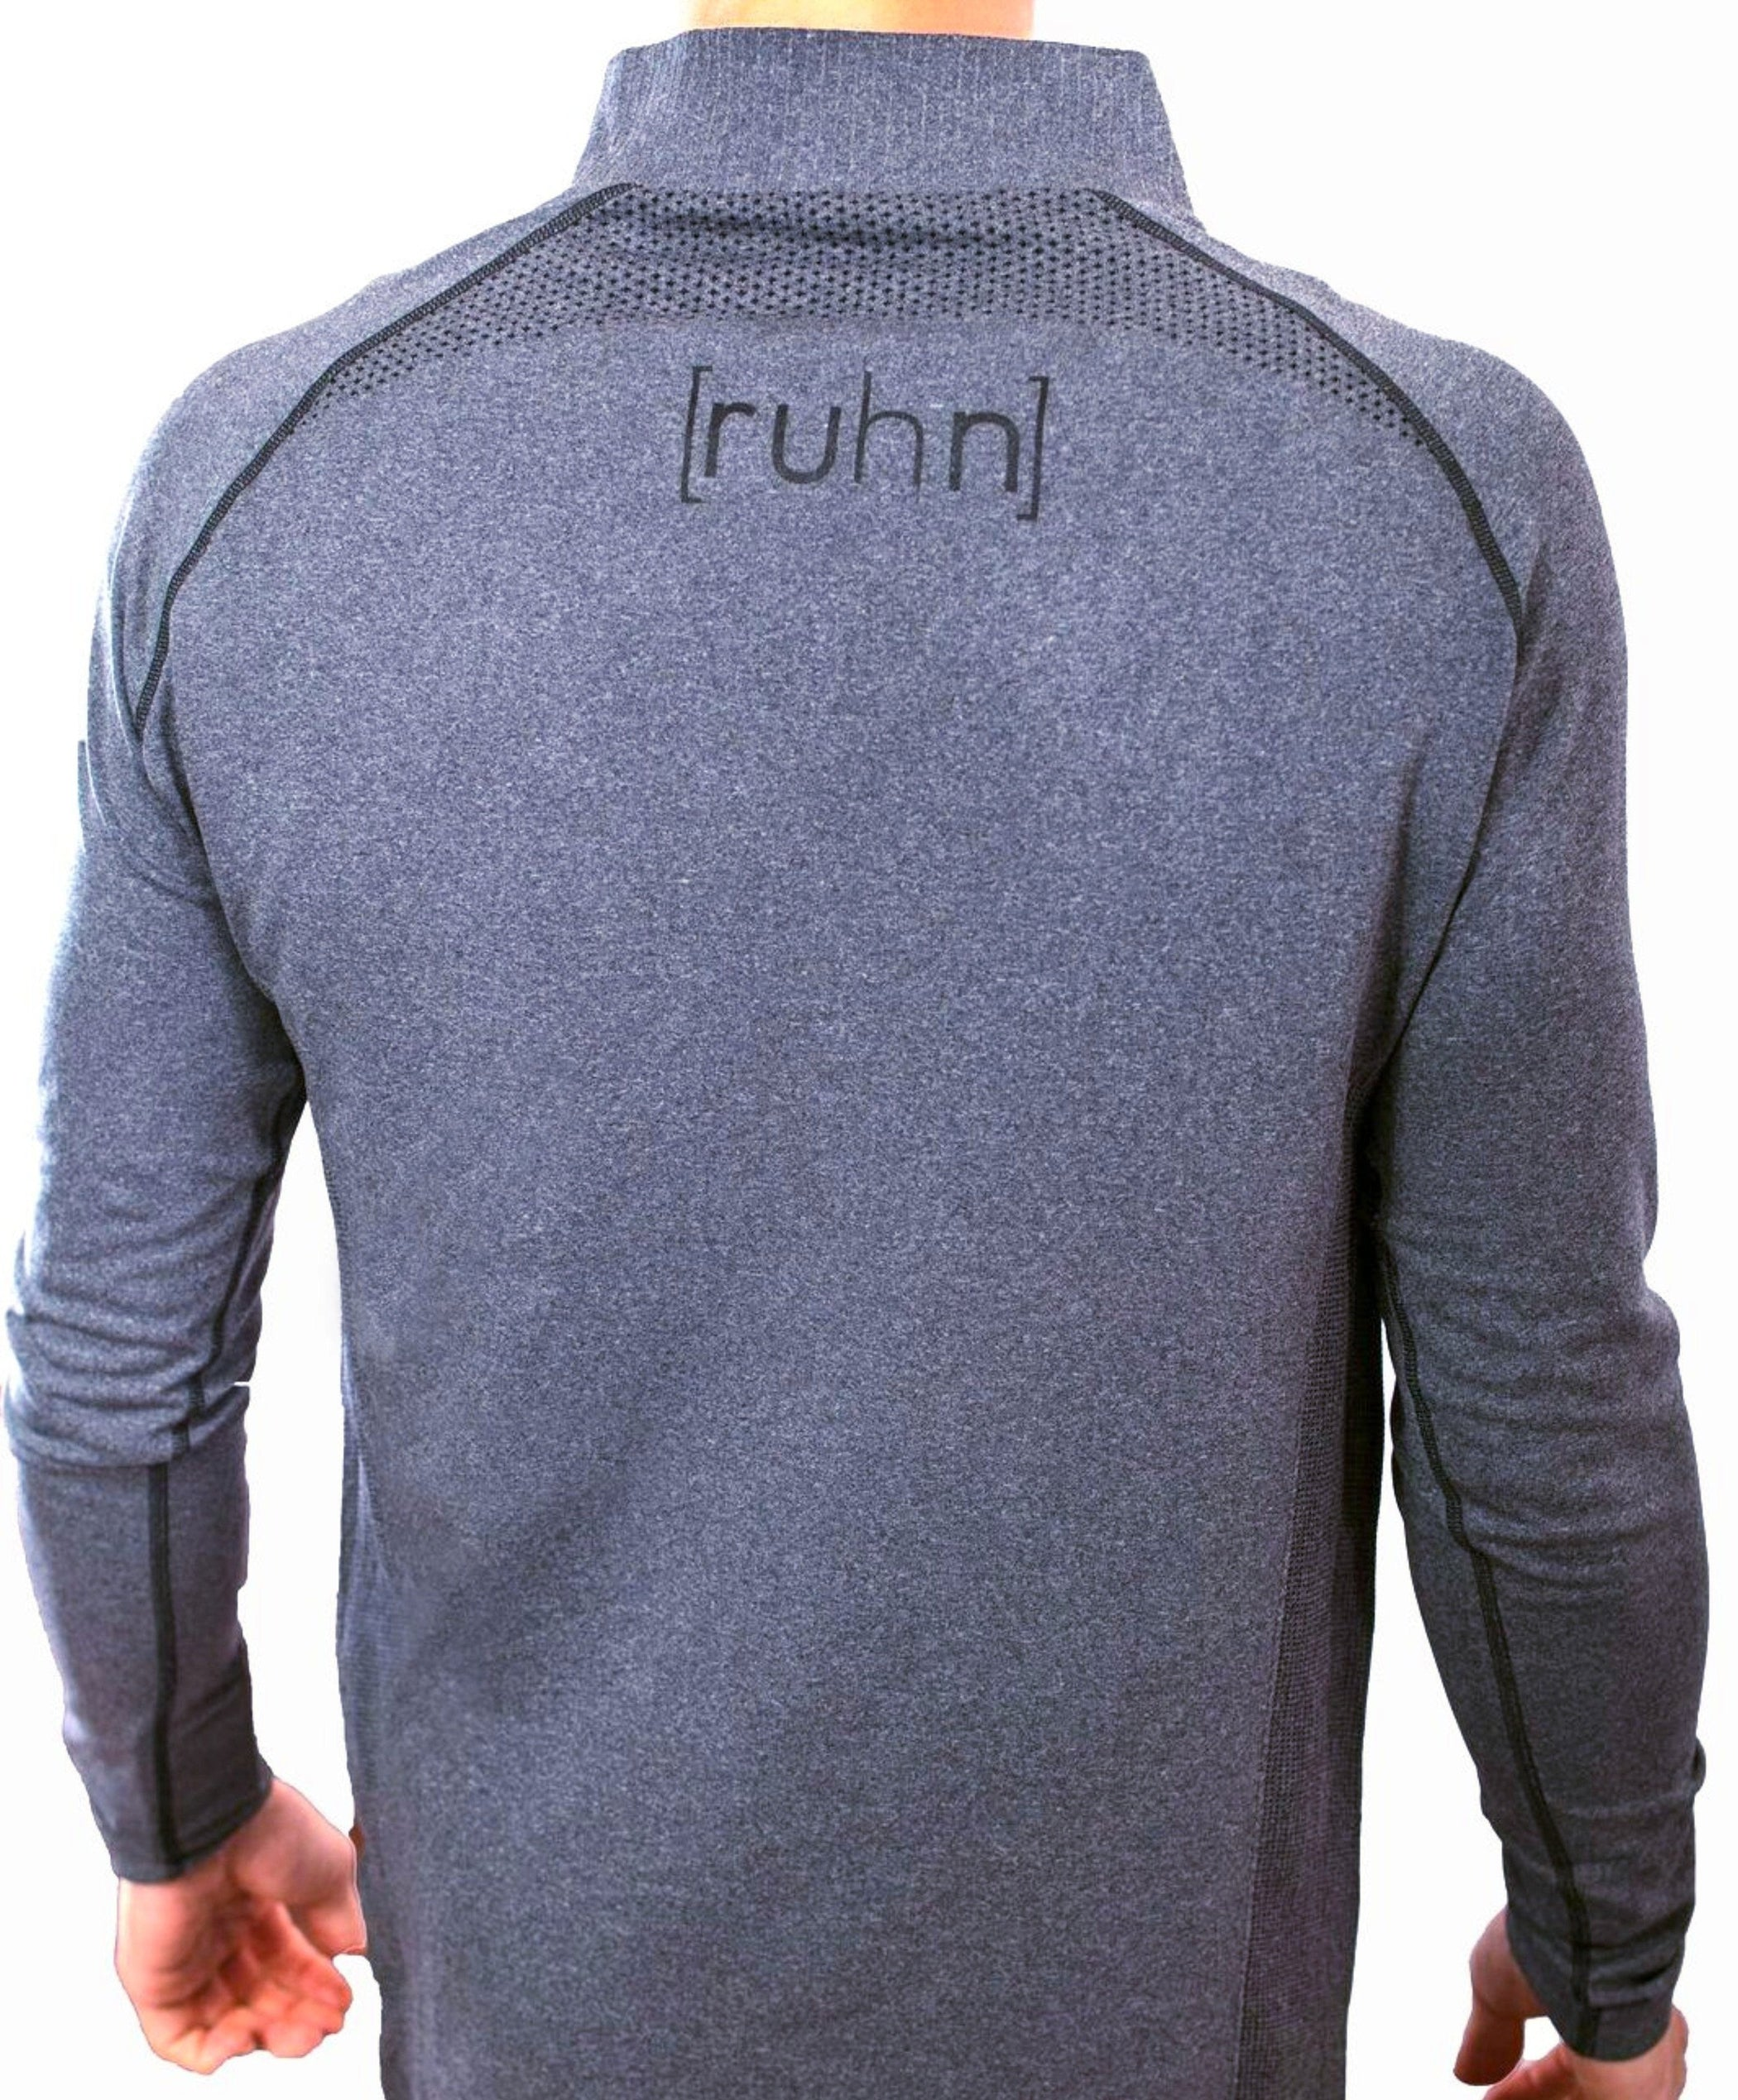 Graphite quarter-zip compression top with bonded zipper. Back view.